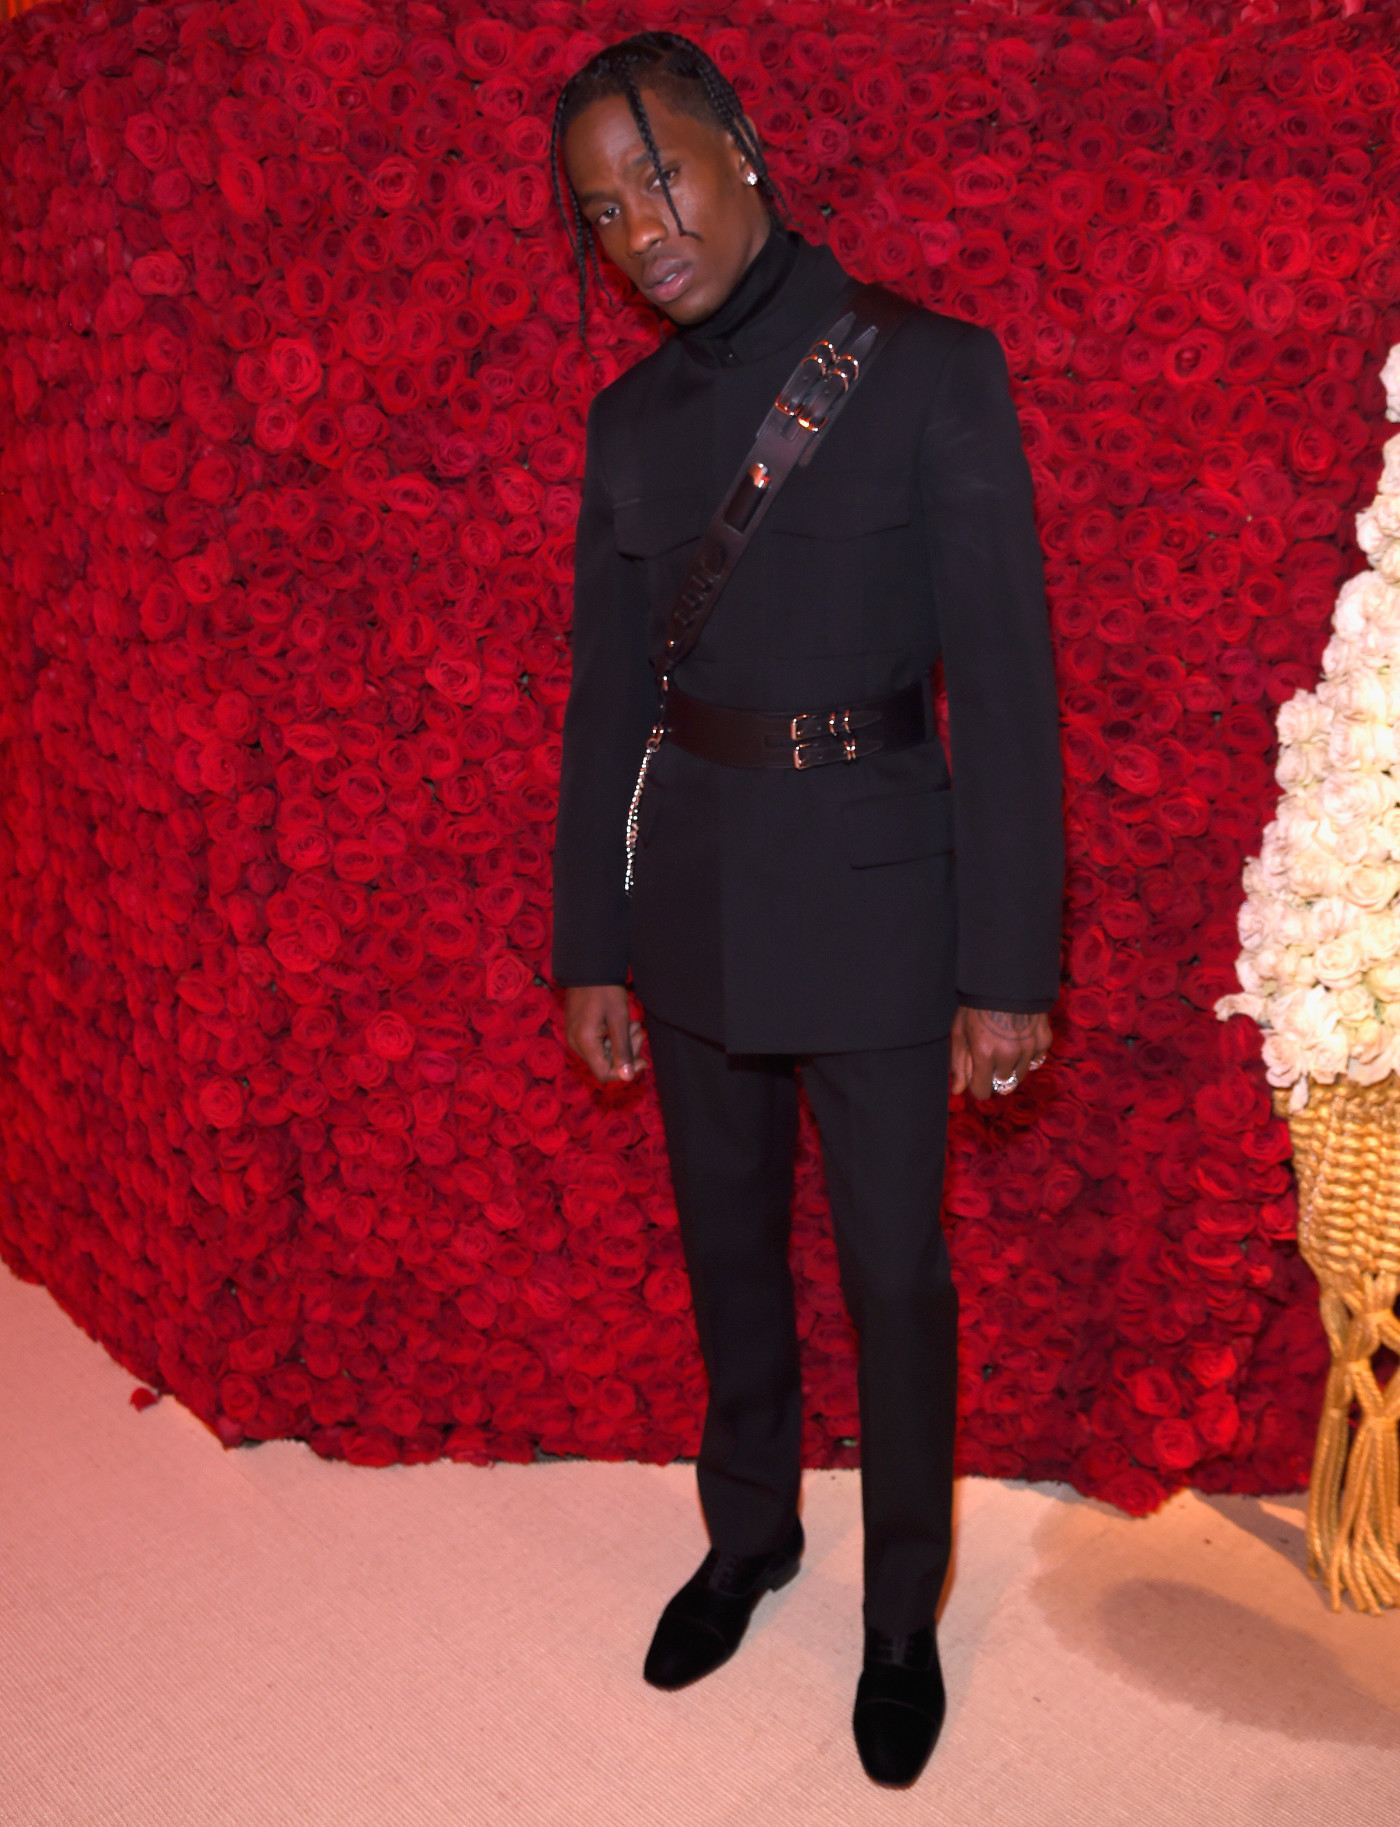 ic: Travis Scott's suave formalwear, accessorized with leather harnesses, pictured at the Met Gala 2018. Image via Getty/Kevin Mazur/MG18